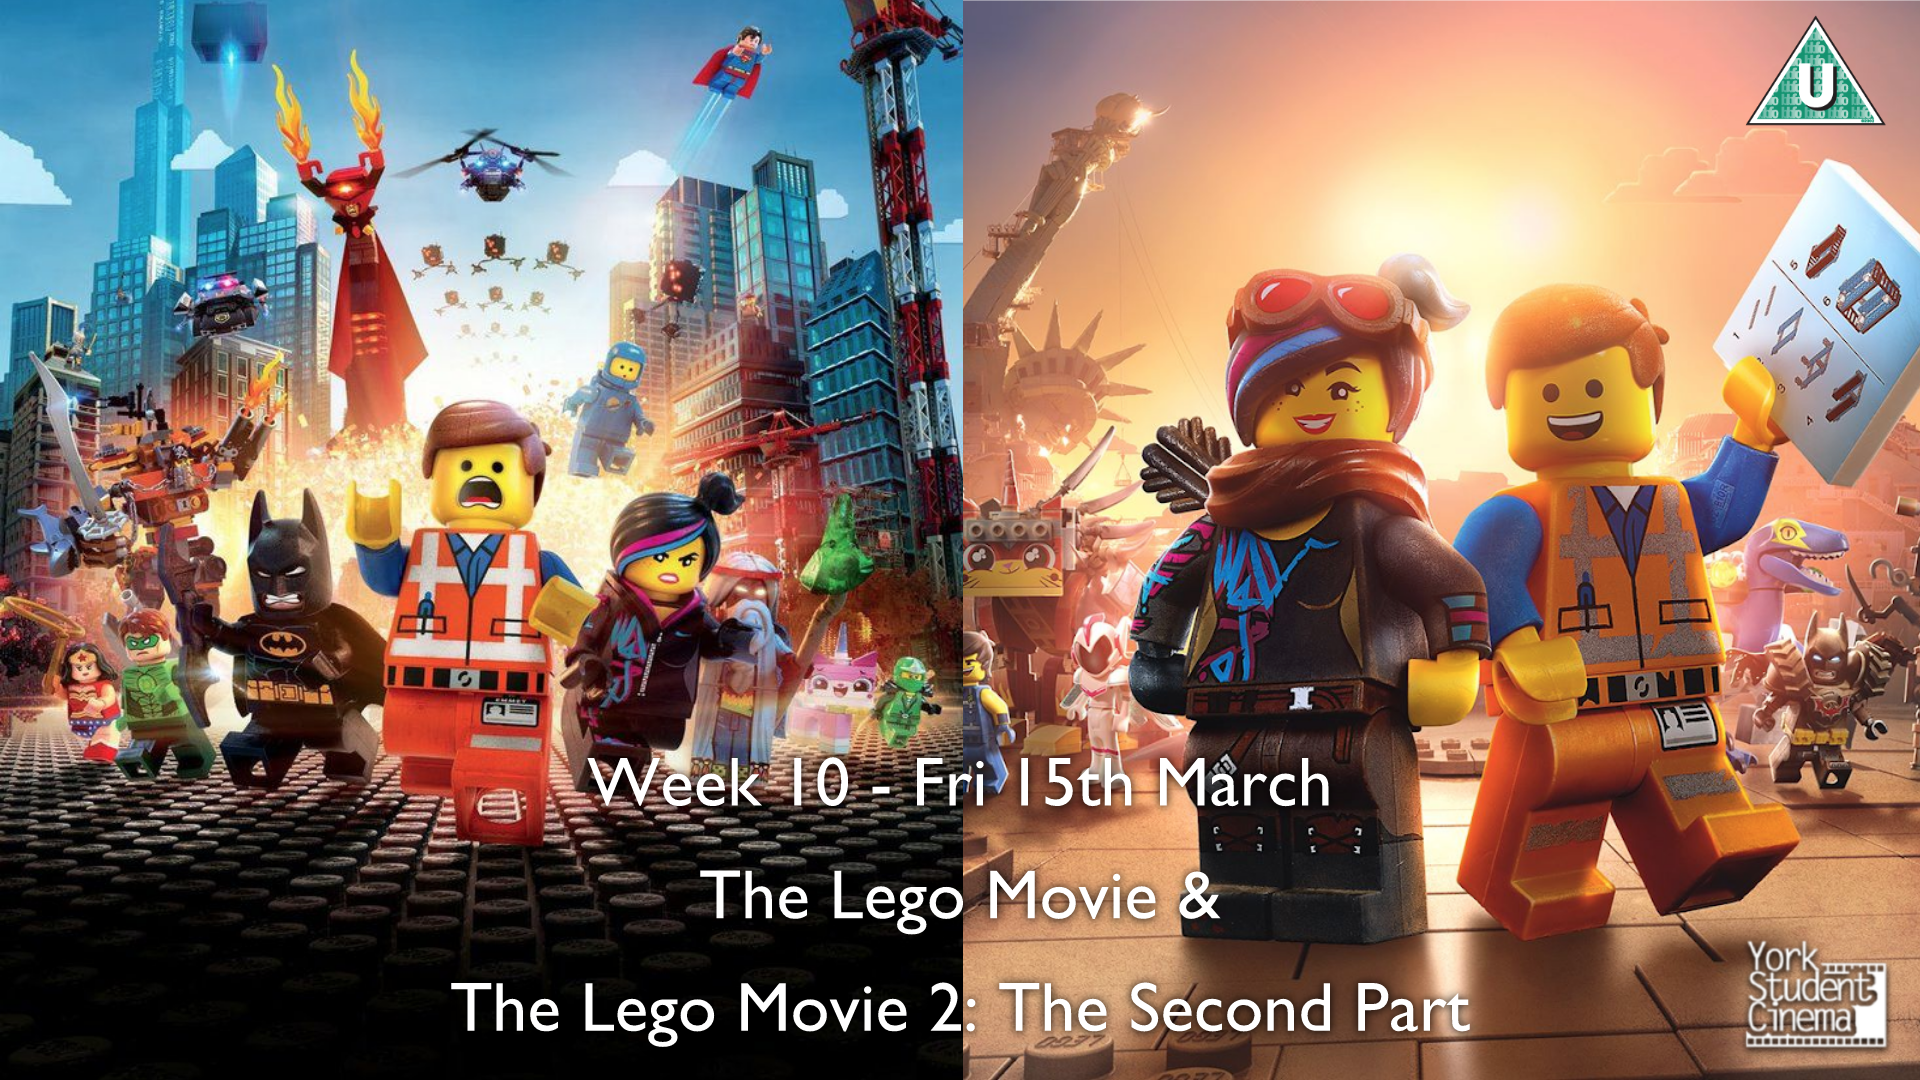 YSC Screening of The LEGO Movie and The LEGO Movie 2: The Second Part